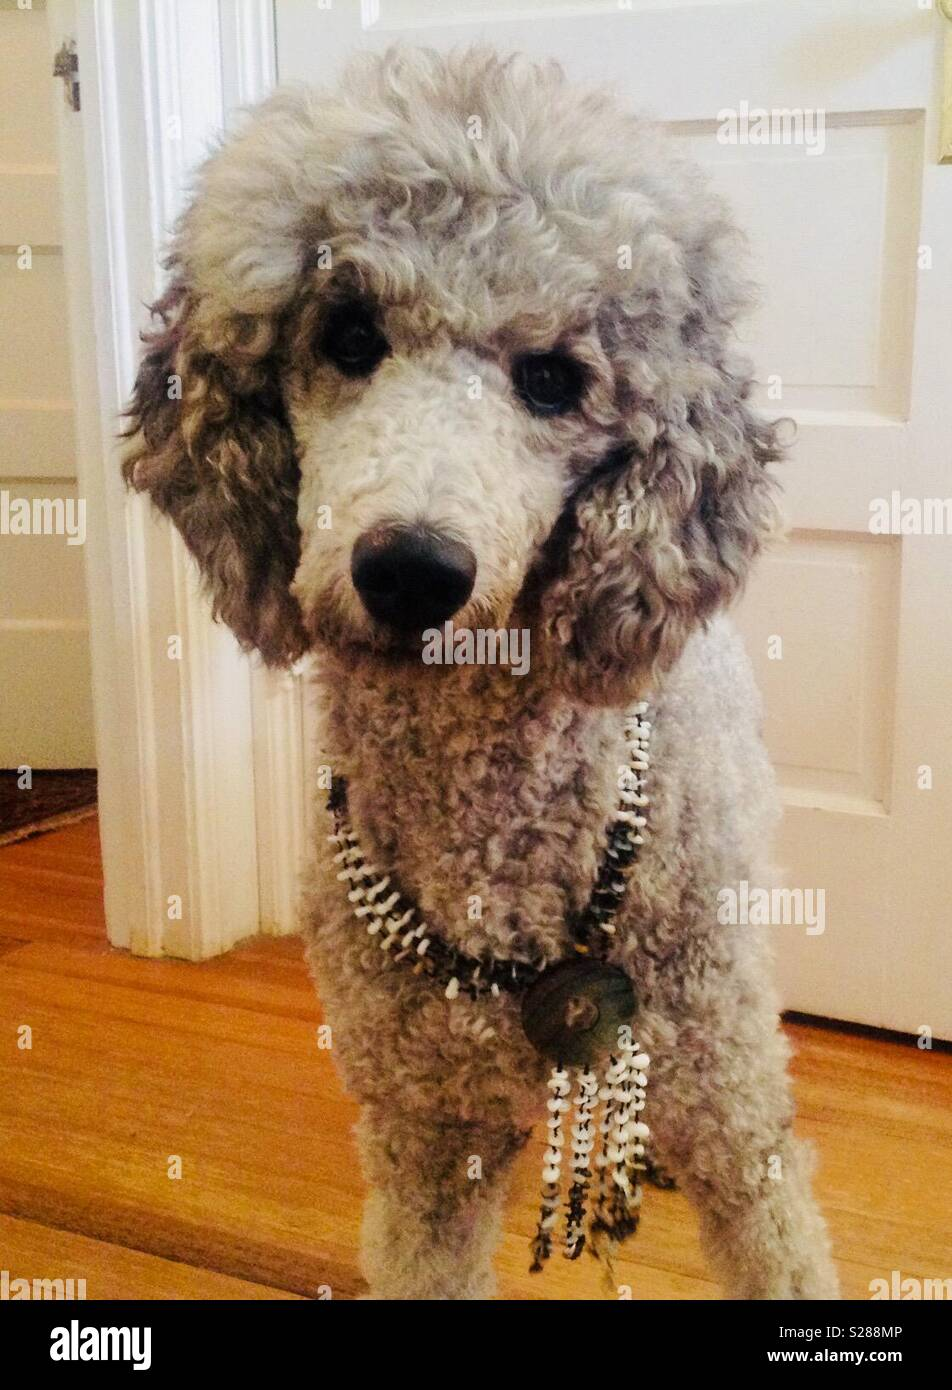 Poodle modeling a necklace - Stock Image